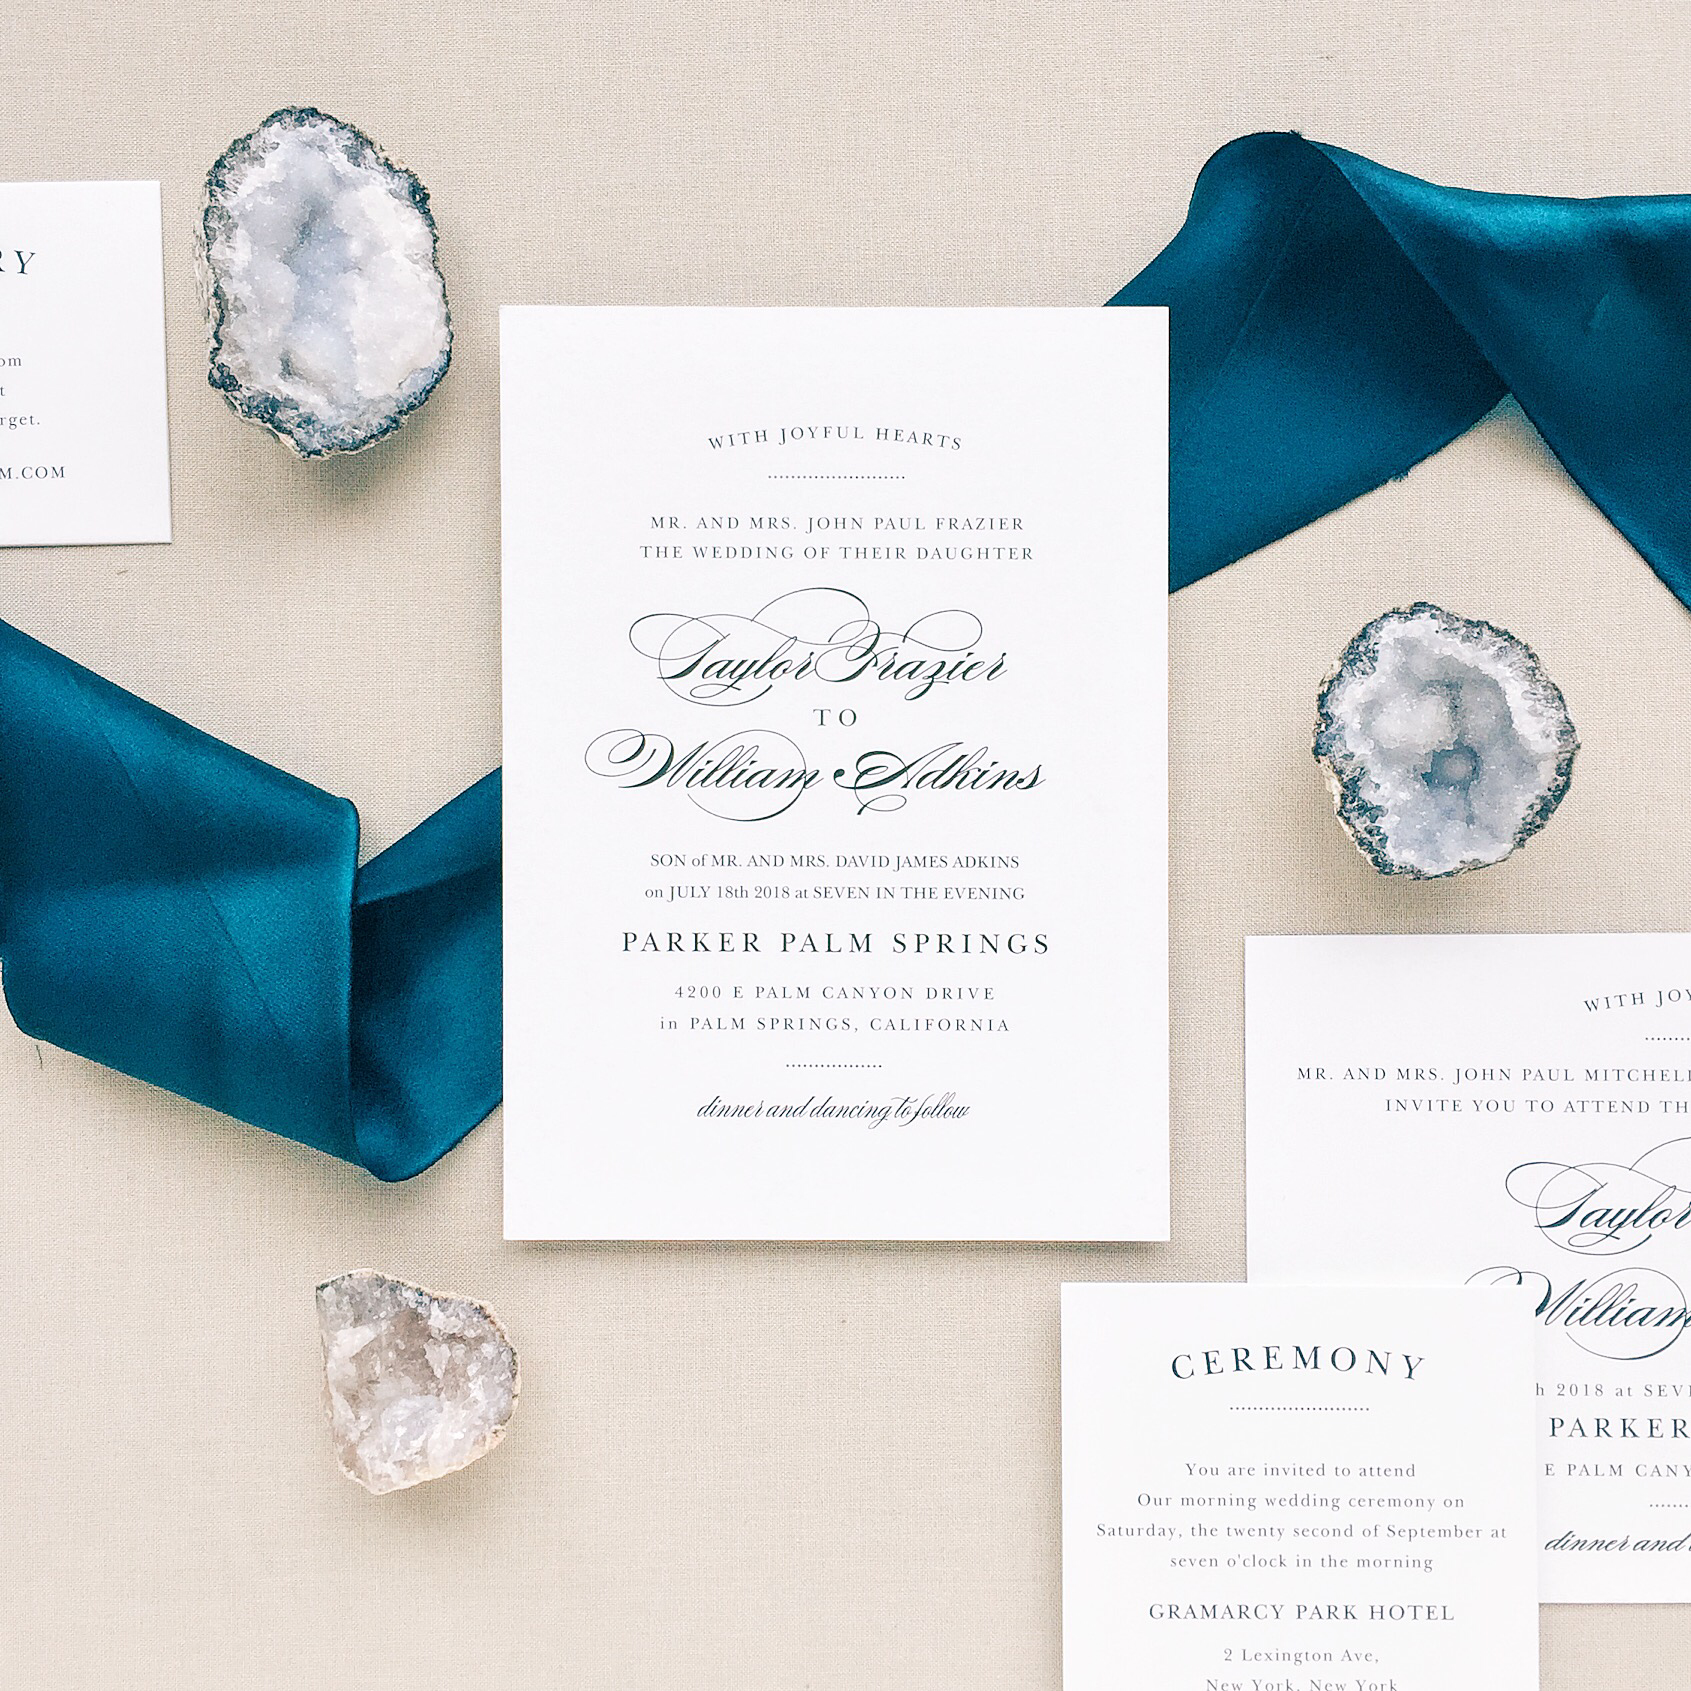 Beautiful unique wedding invitations from Basic Invite. Image courtesy of Basic Invite